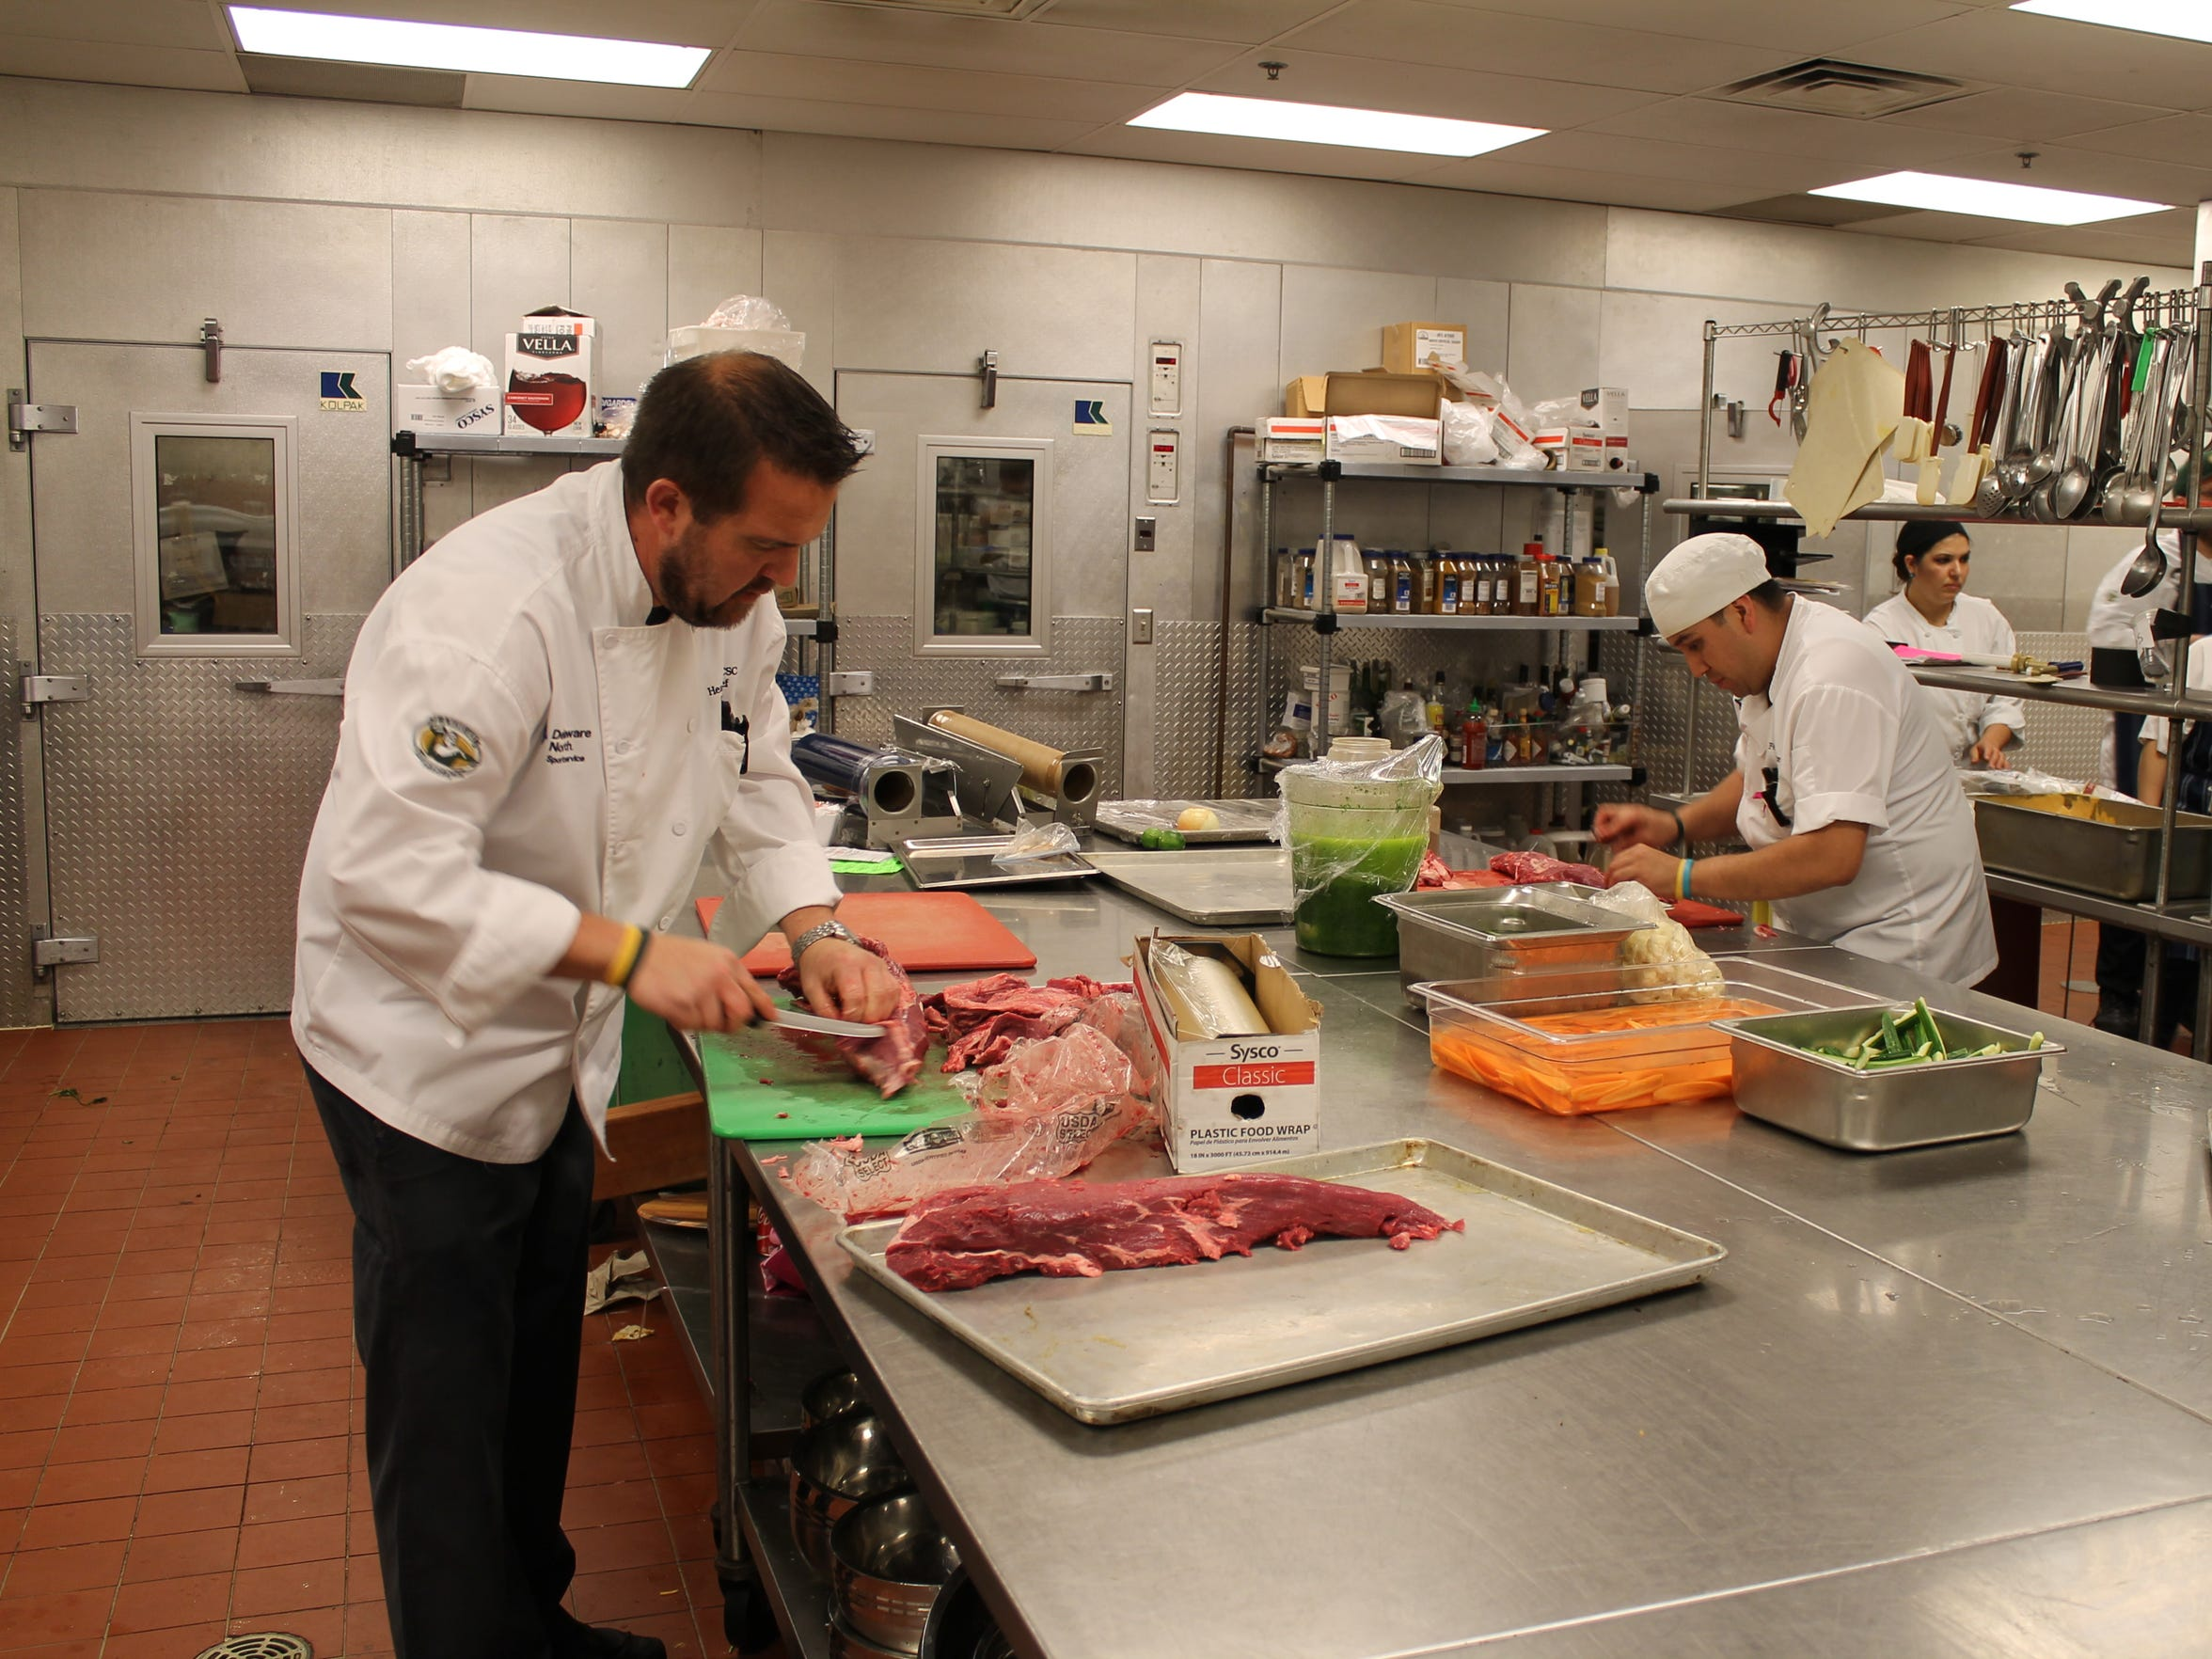 Heath Barbato, Lambeau Field executive chef, is usually a game day manager of his food service team, but steps in to chef work when needed.